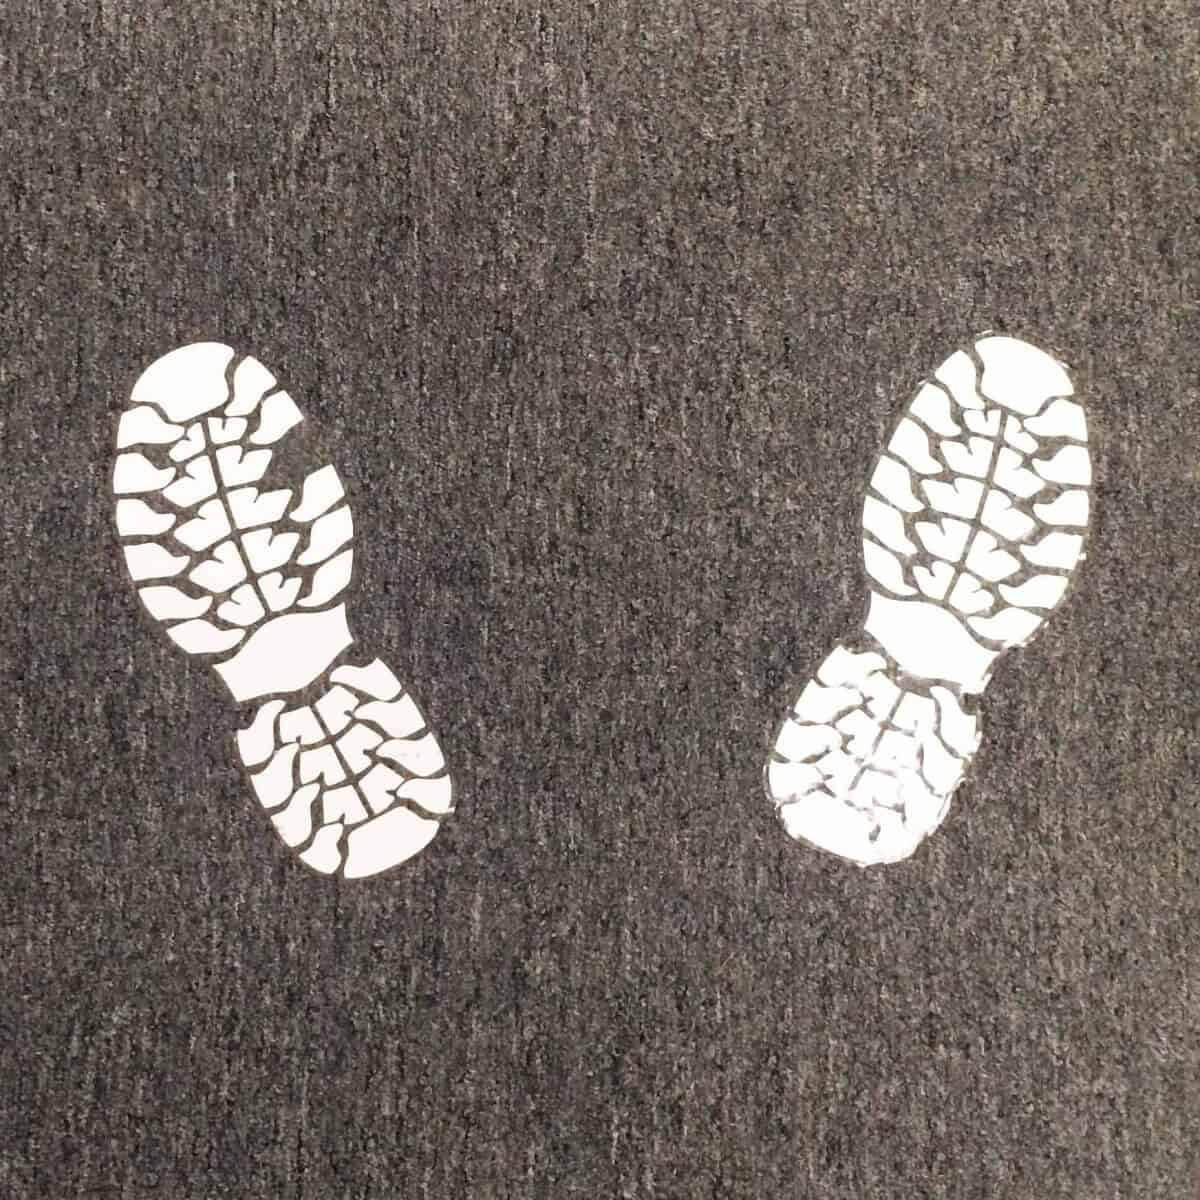 Removable Carpet Stickers